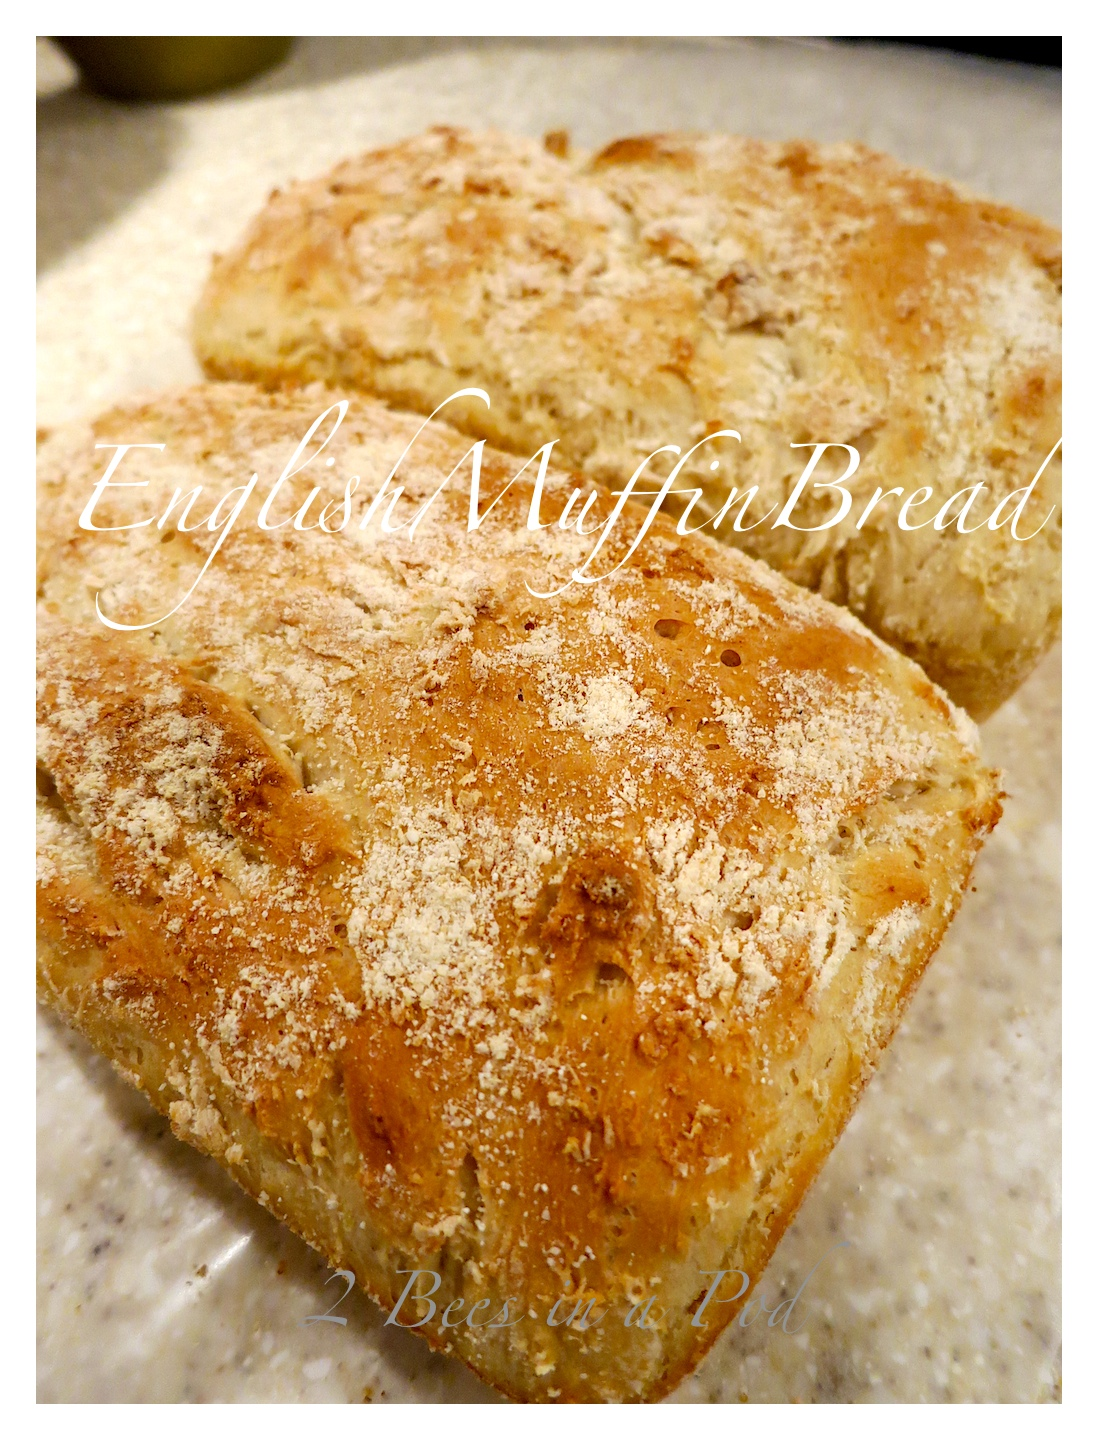 Easy to bake - English Muffin Bread. Freezes very well!